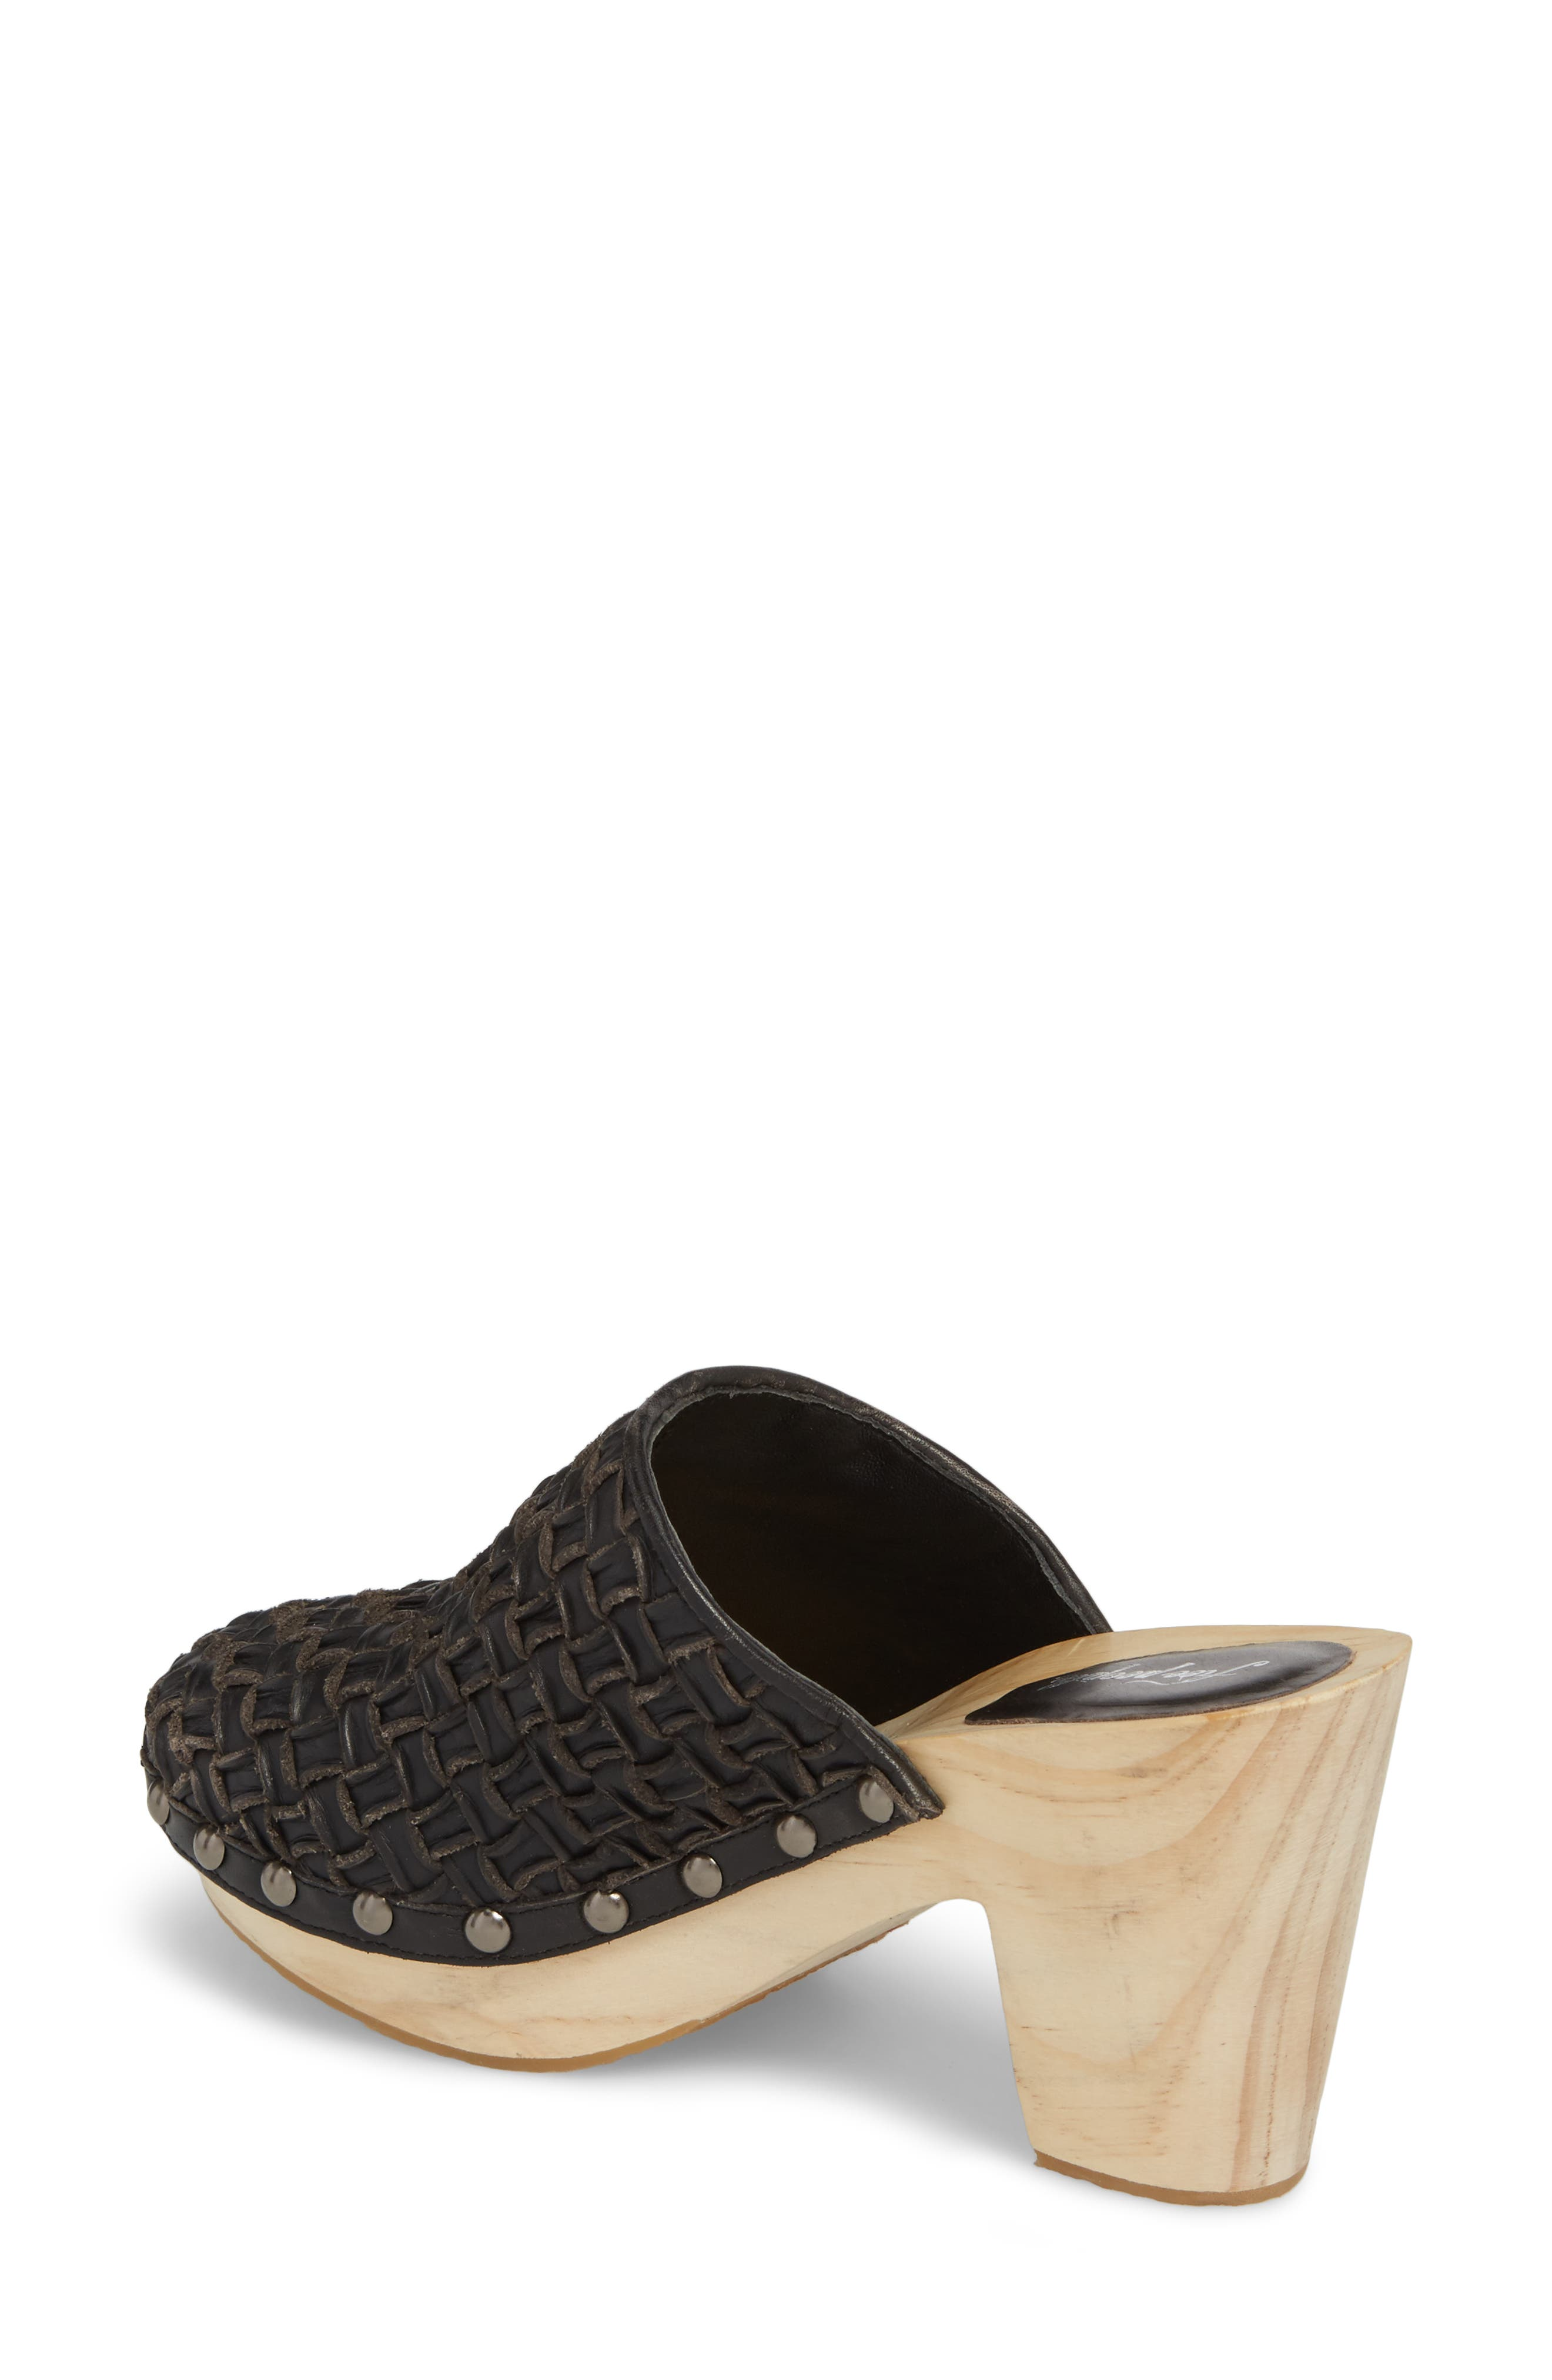 FREE PEOPLE,                             Adelaide Clog,                             Alternate thumbnail 2, color,                             001